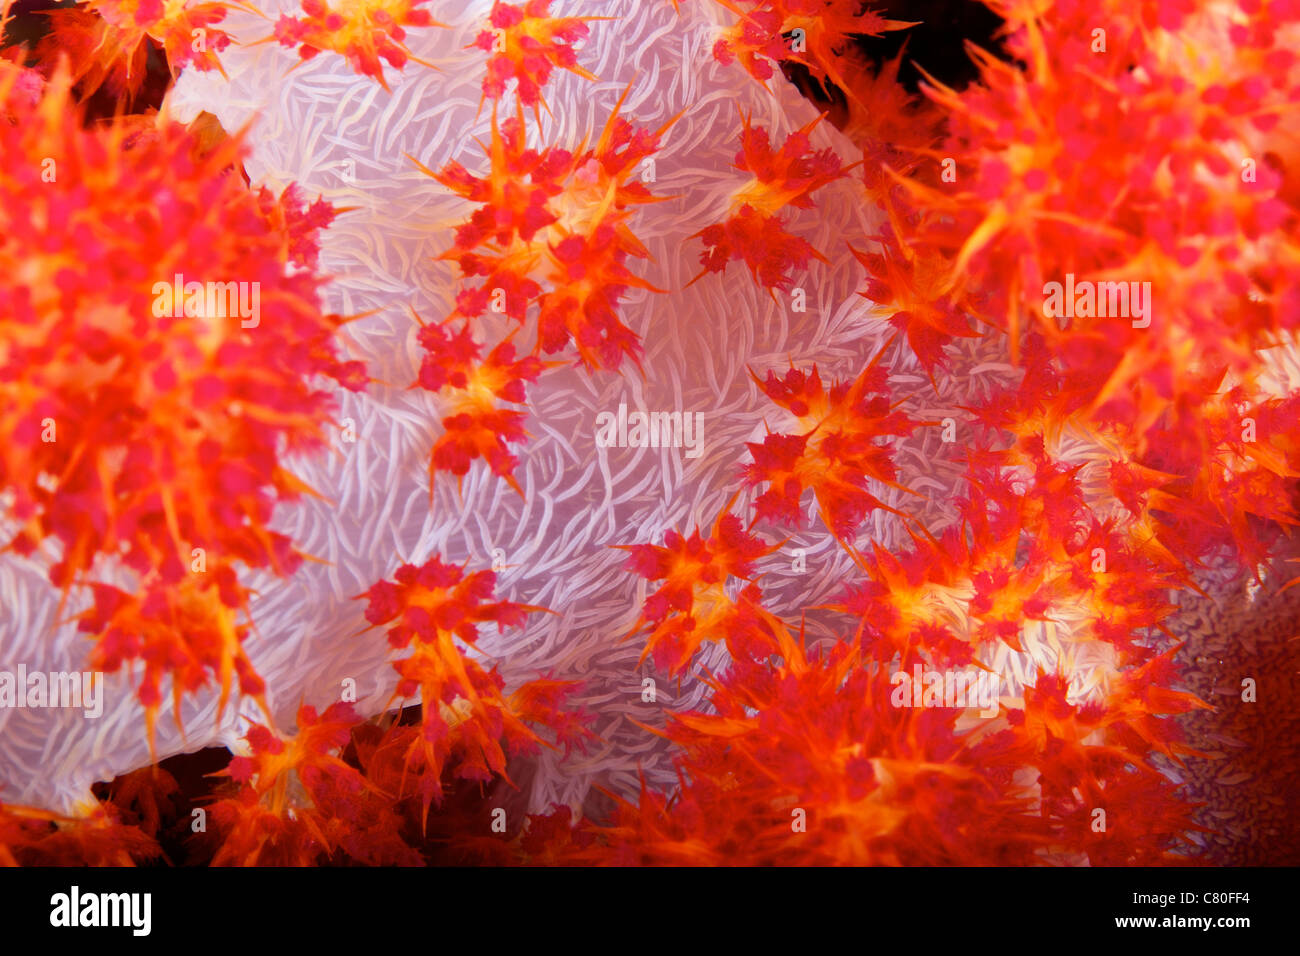 Detailed view of soft coral revealing the spicules that give stability to its form, Fiji. - Stock Image